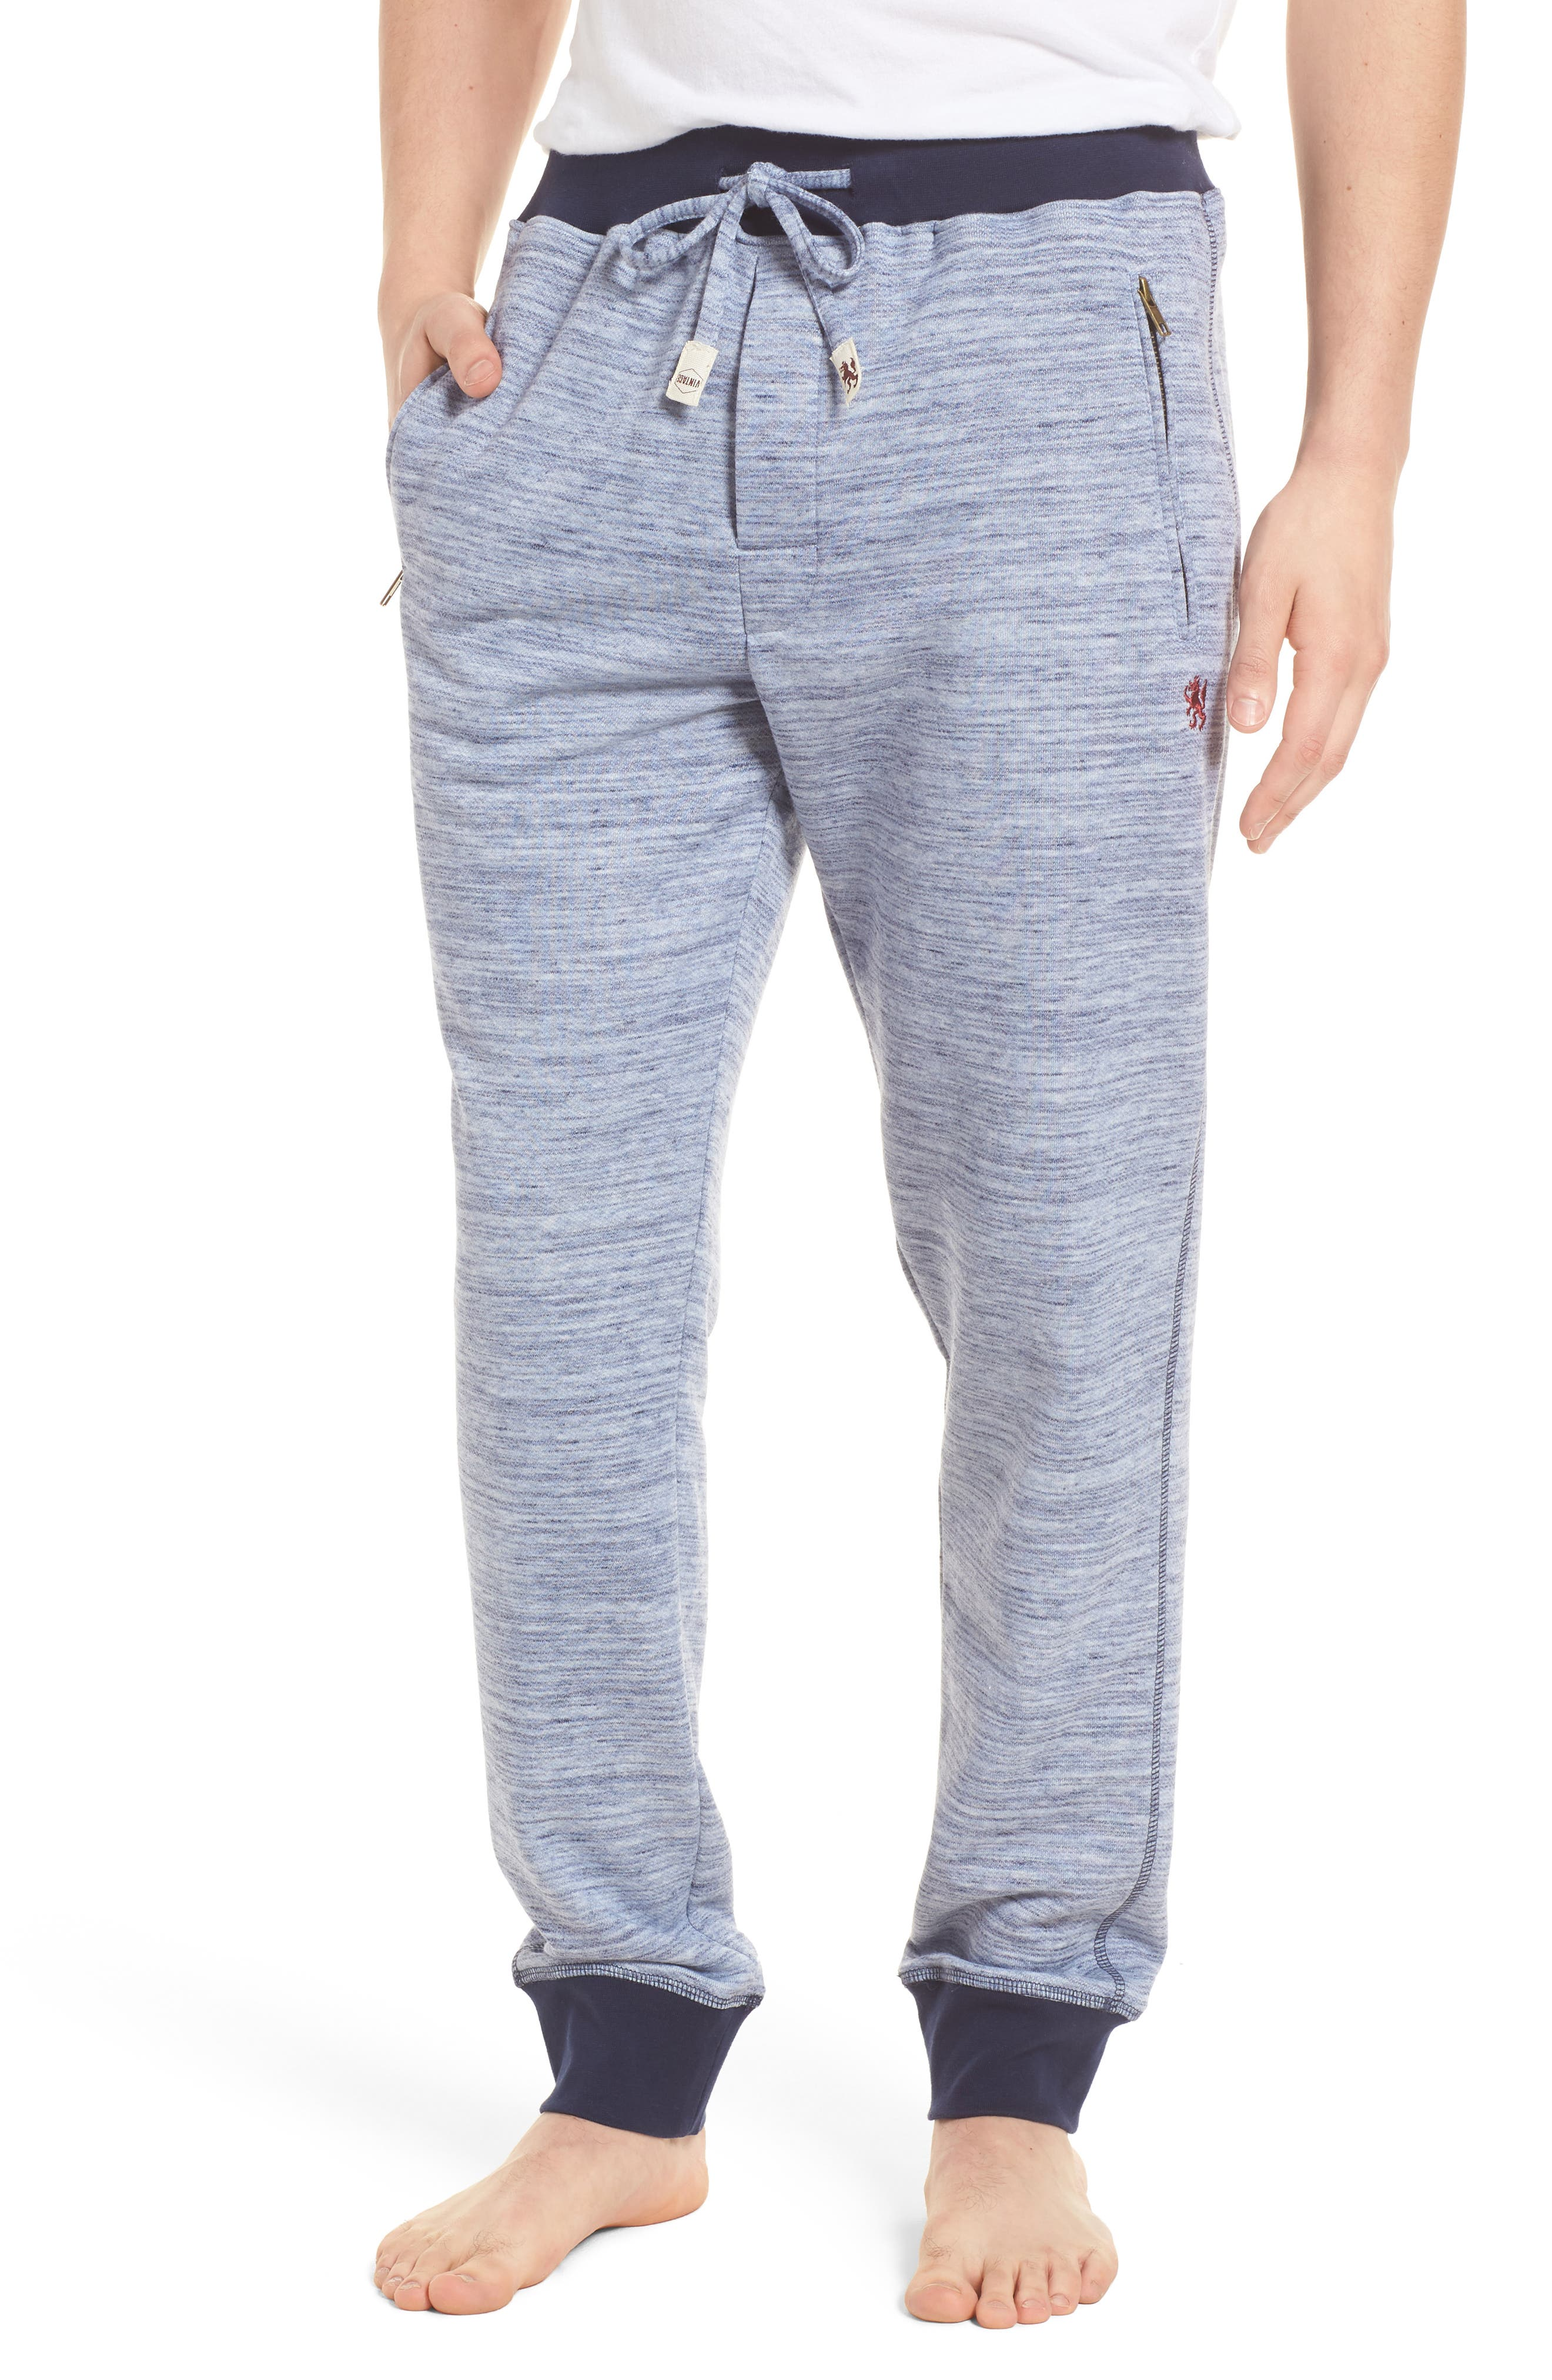 Swept In Waves Lounge Pants,                             Main thumbnail 1, color,                             400